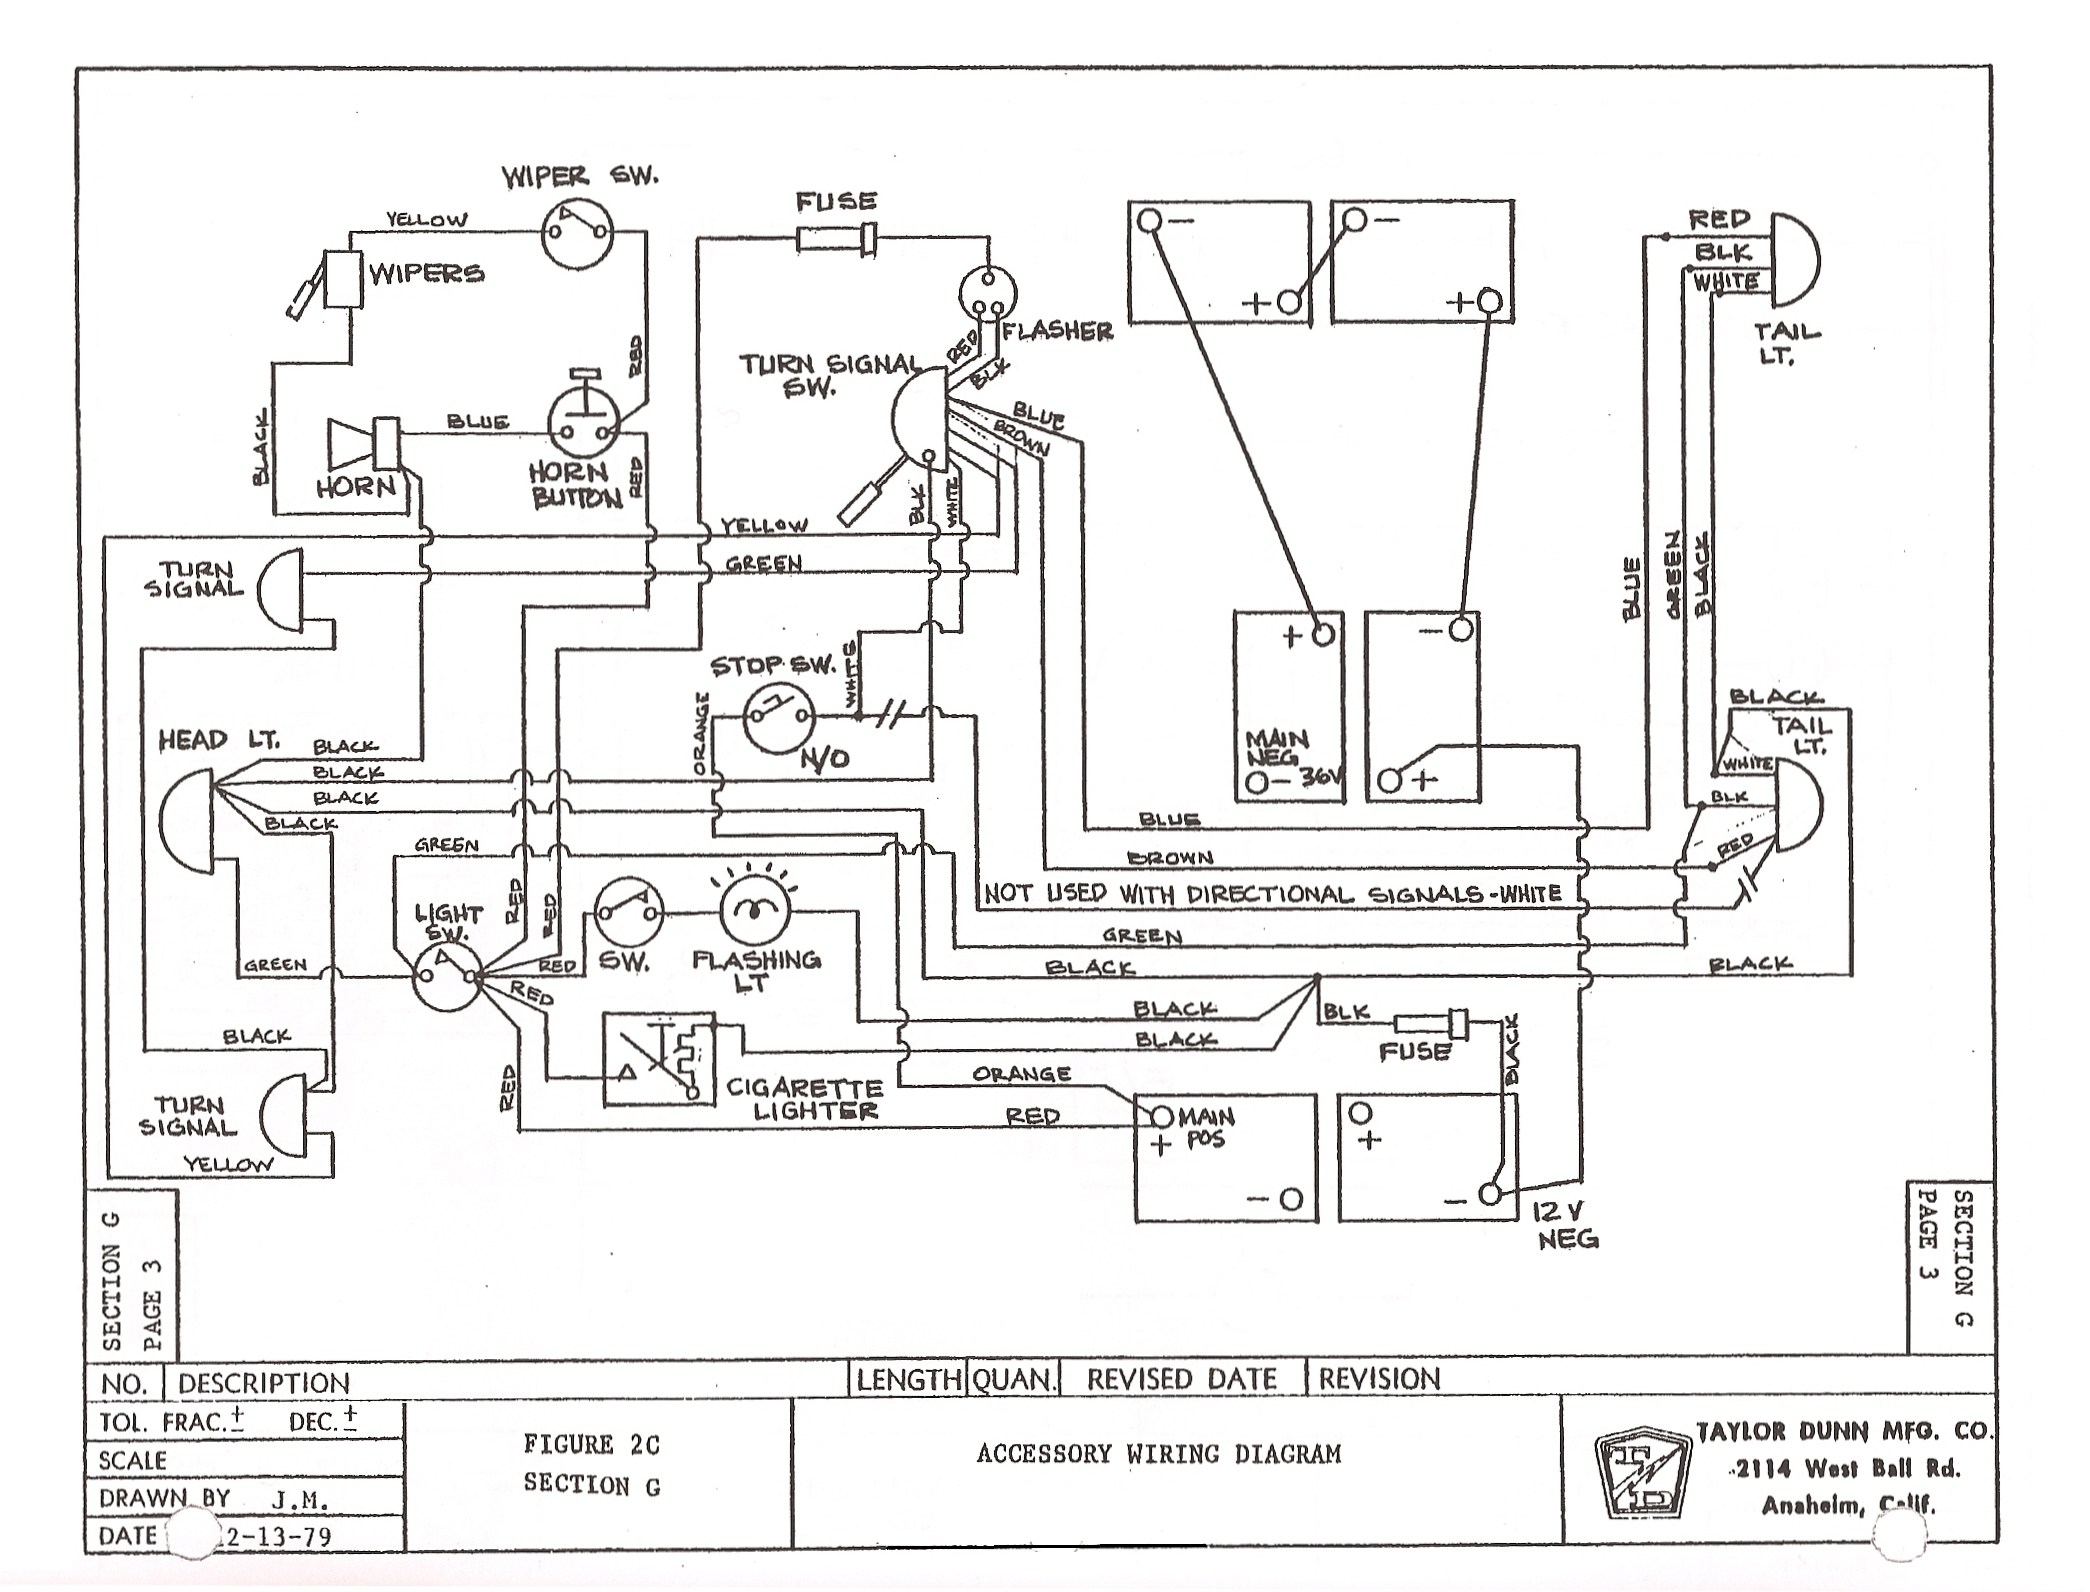 asabs - blog ss5 36 taylor dunn wiring diagram taylor dunn wiring diagram 106882